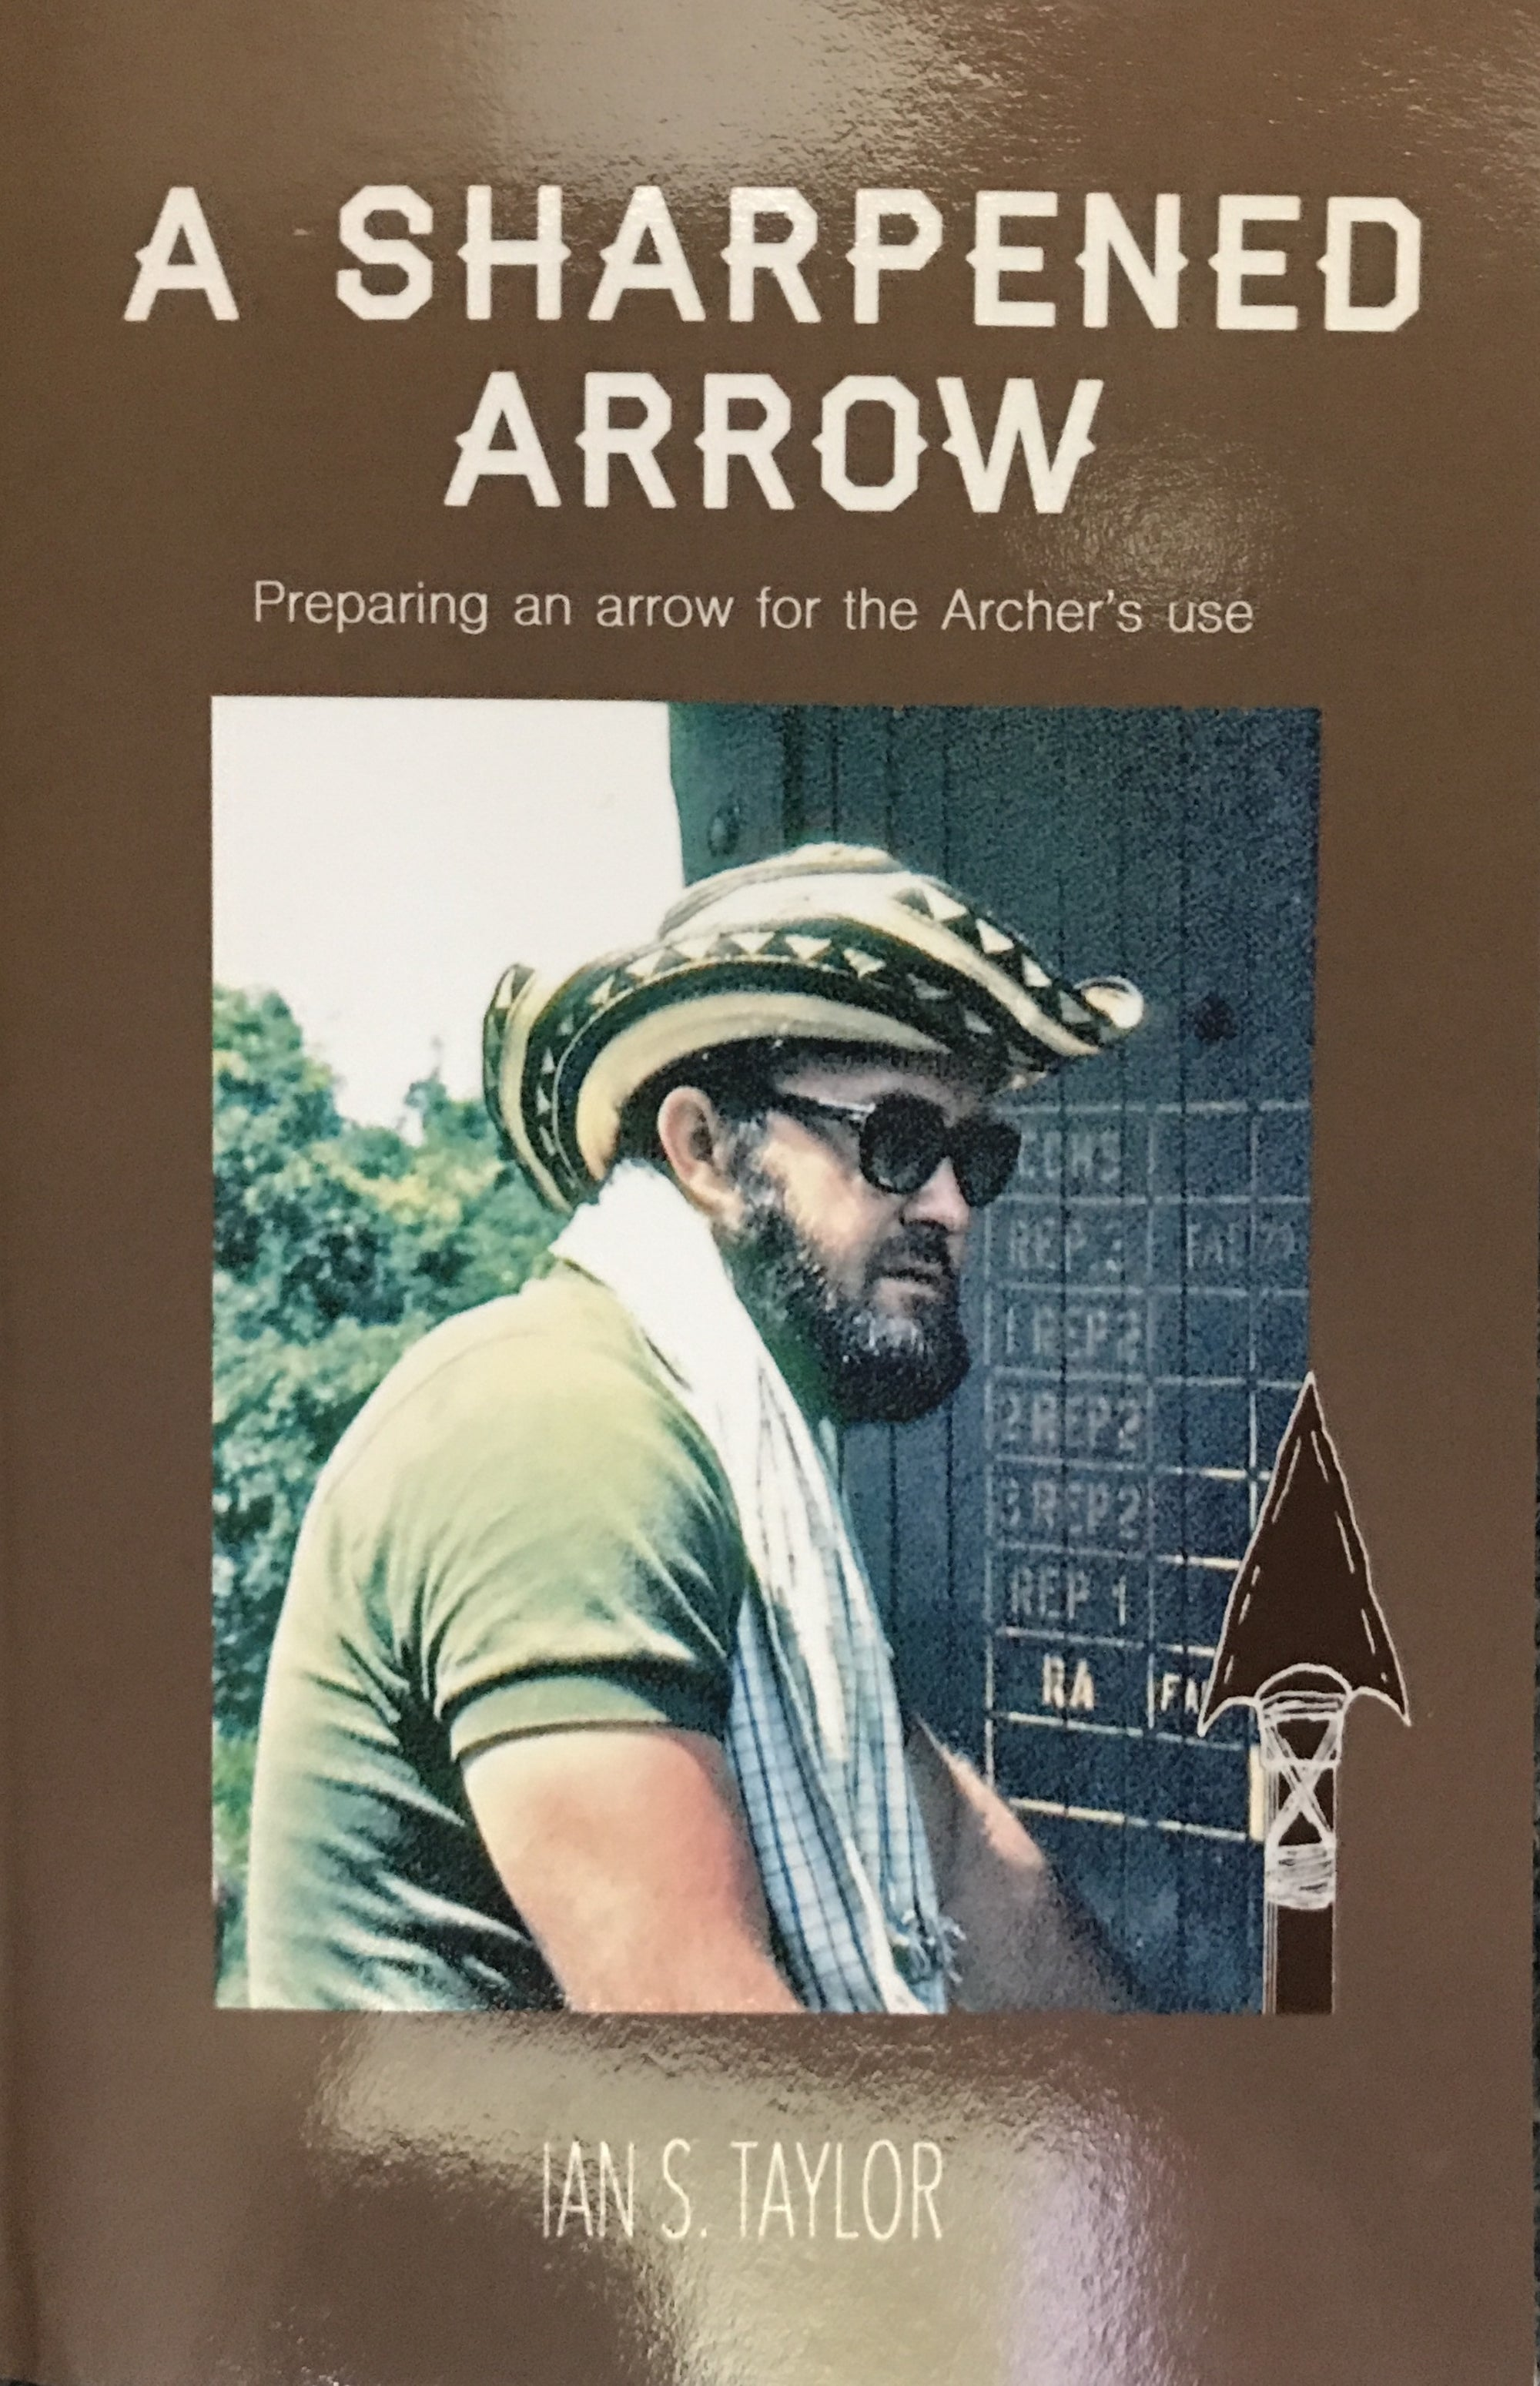 A Sharpened Arrow